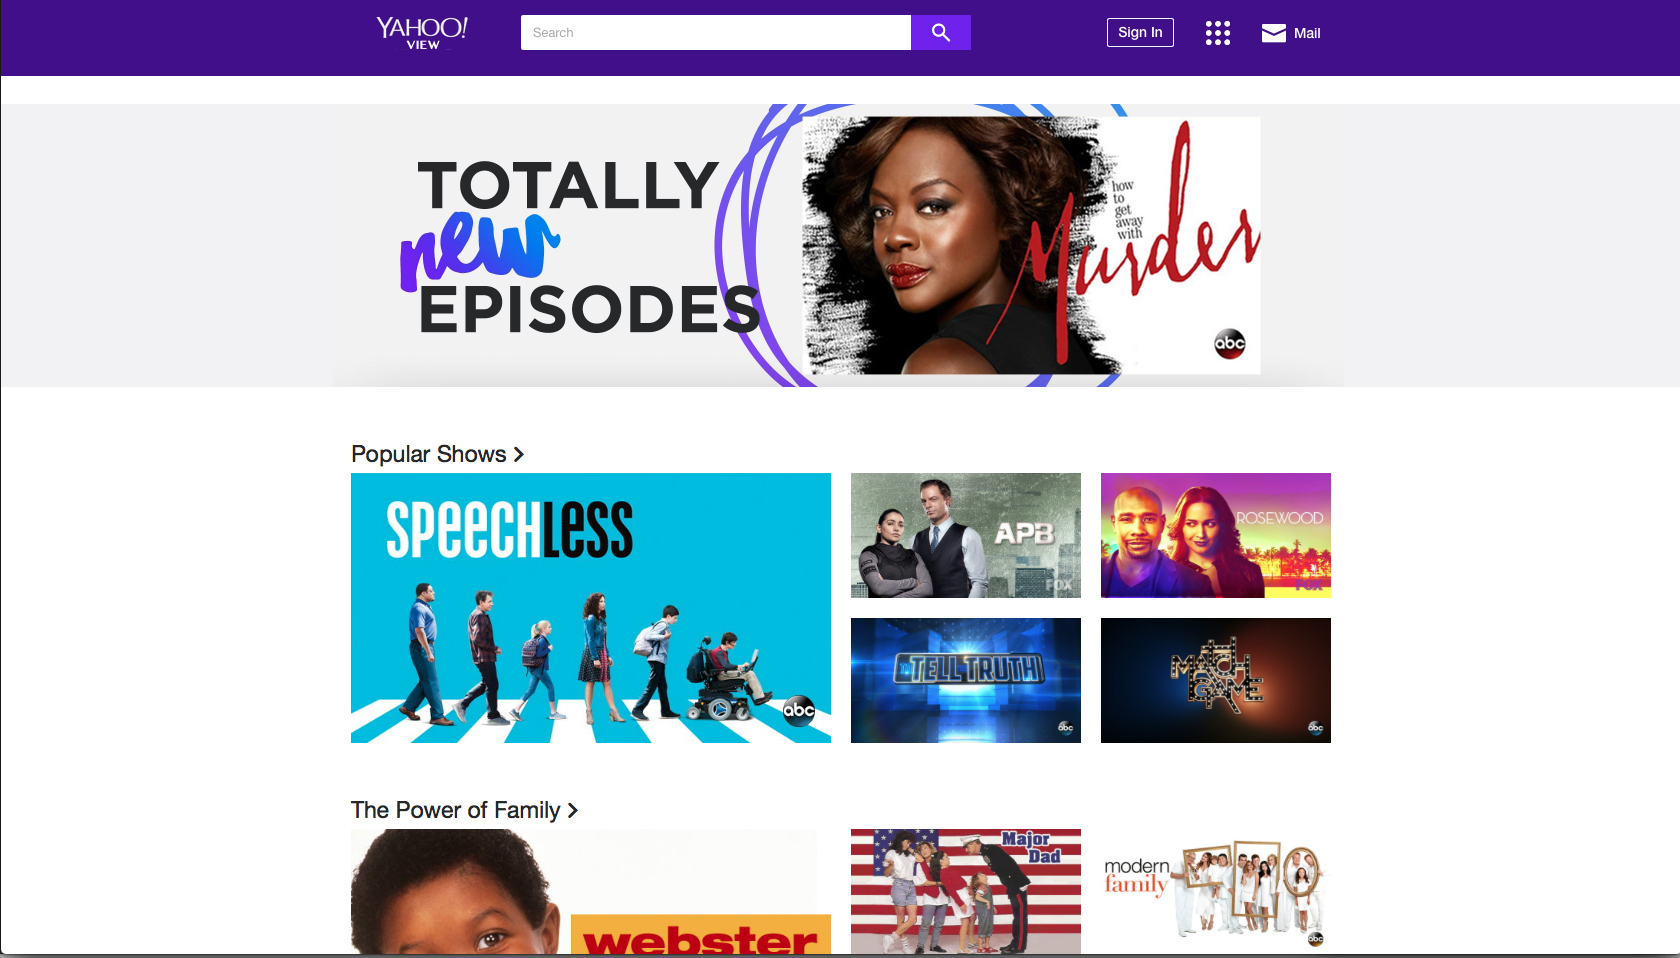 Yahoo films streaming